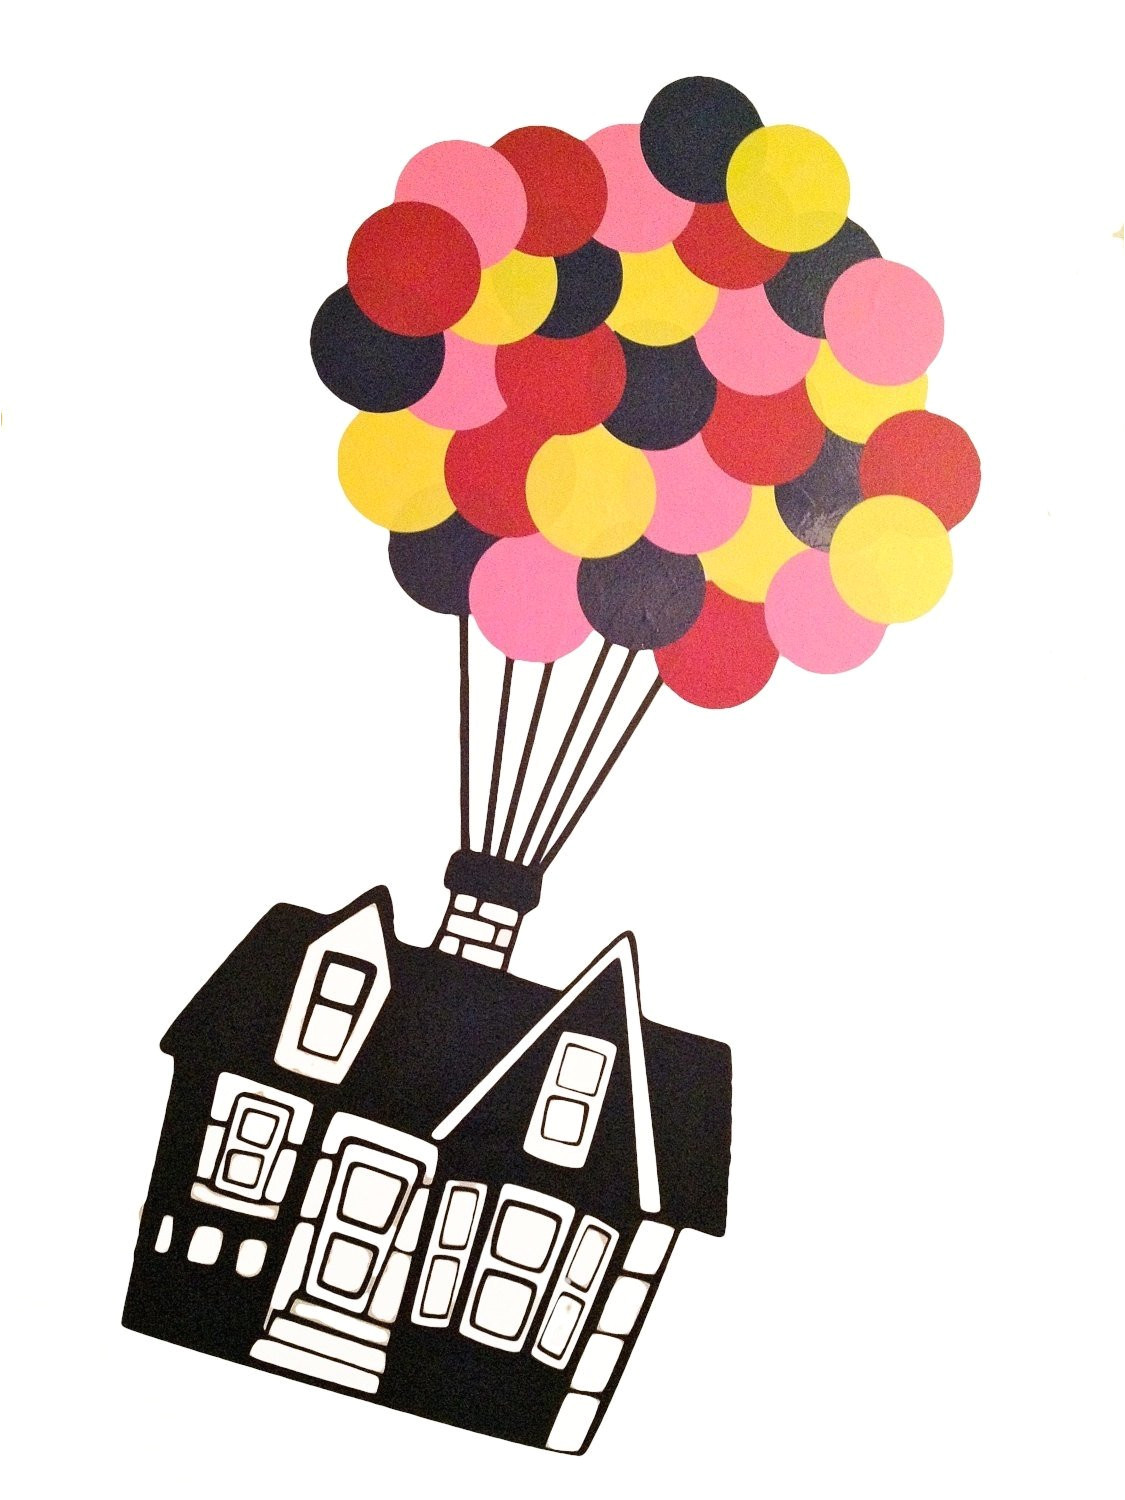 Party Supplies Store Roanoke Va Floating House with 32 Hot Air Balloons Vinyl Wall Decal Up Etsy